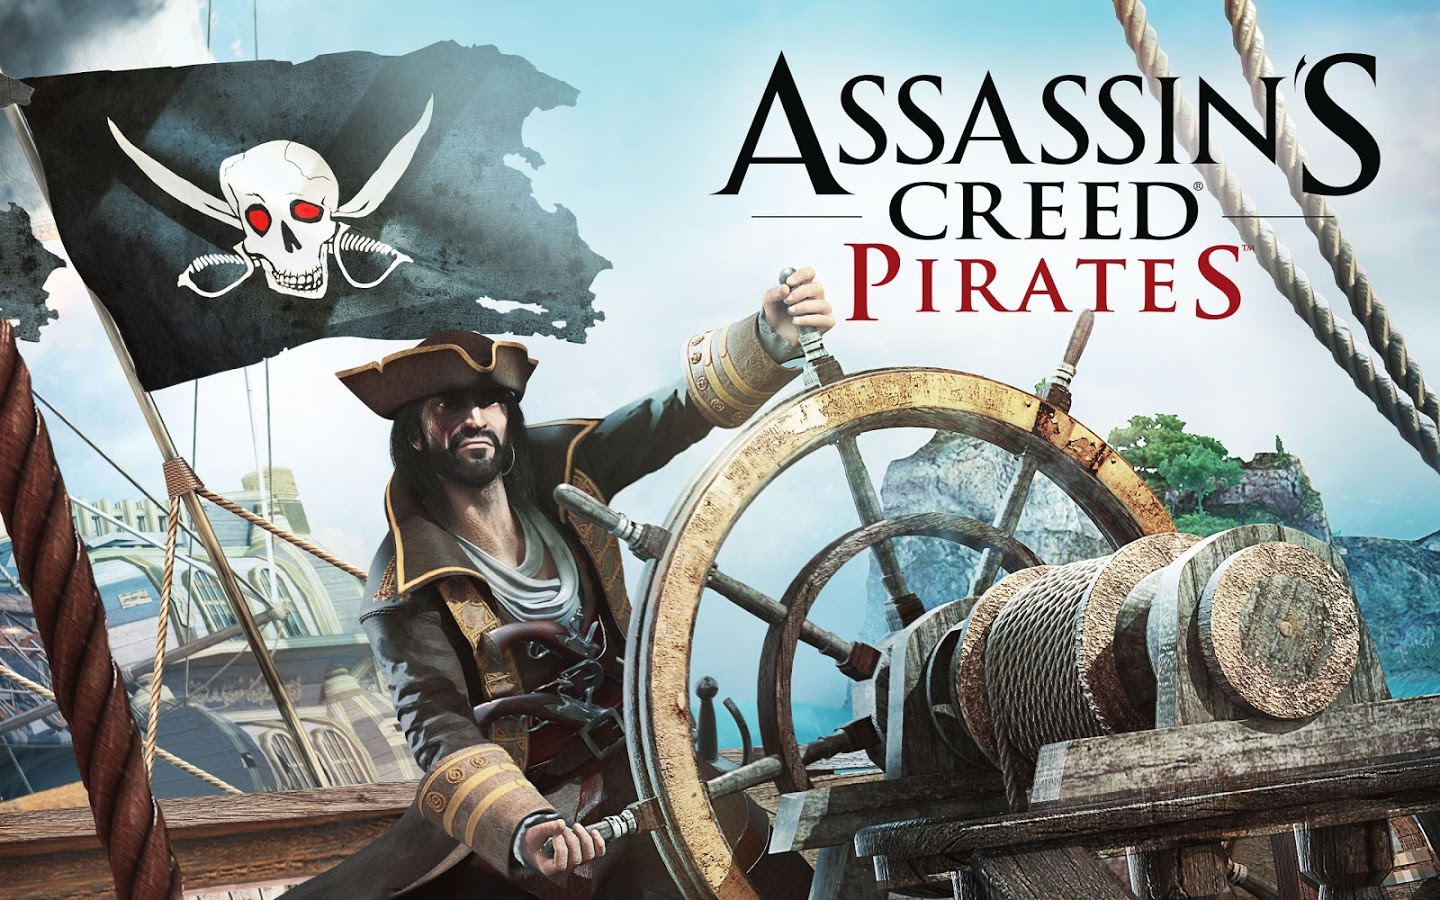 Download Android Games Assassins Creed Pirates apk data mod unlimited money